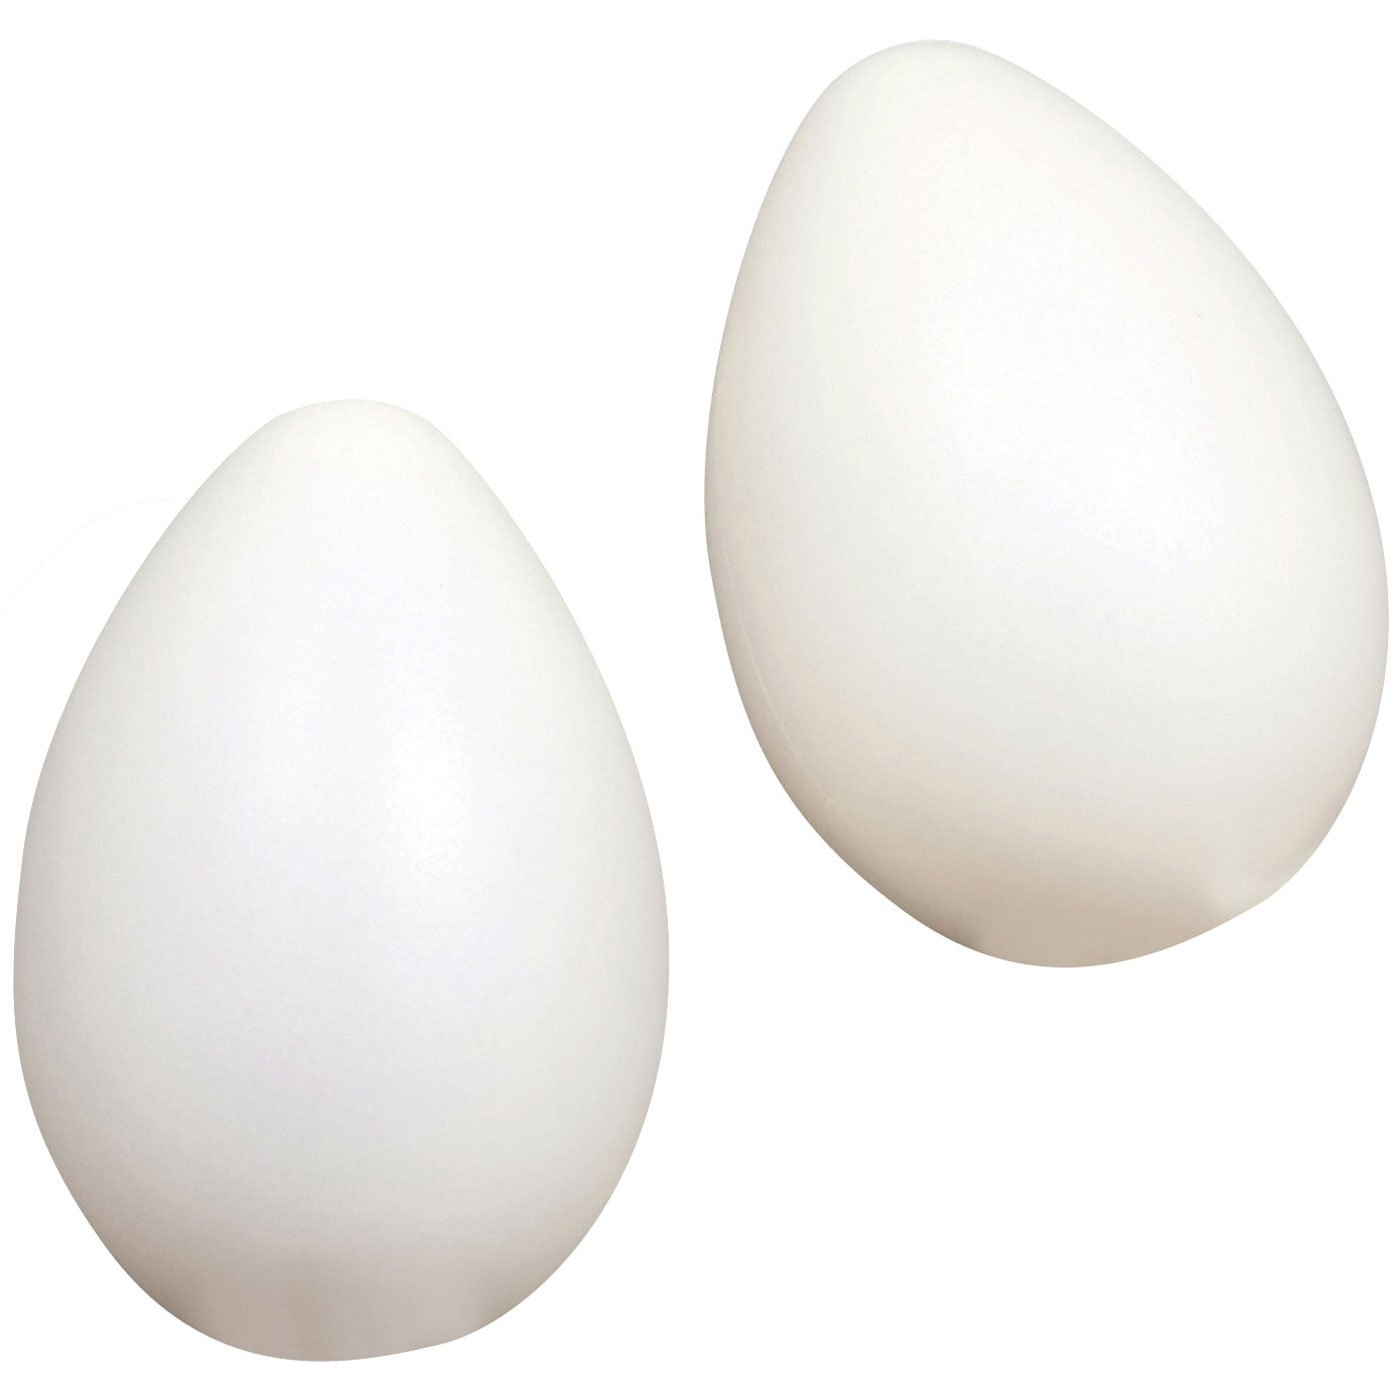 LP Egg Shakers (1 Pair)